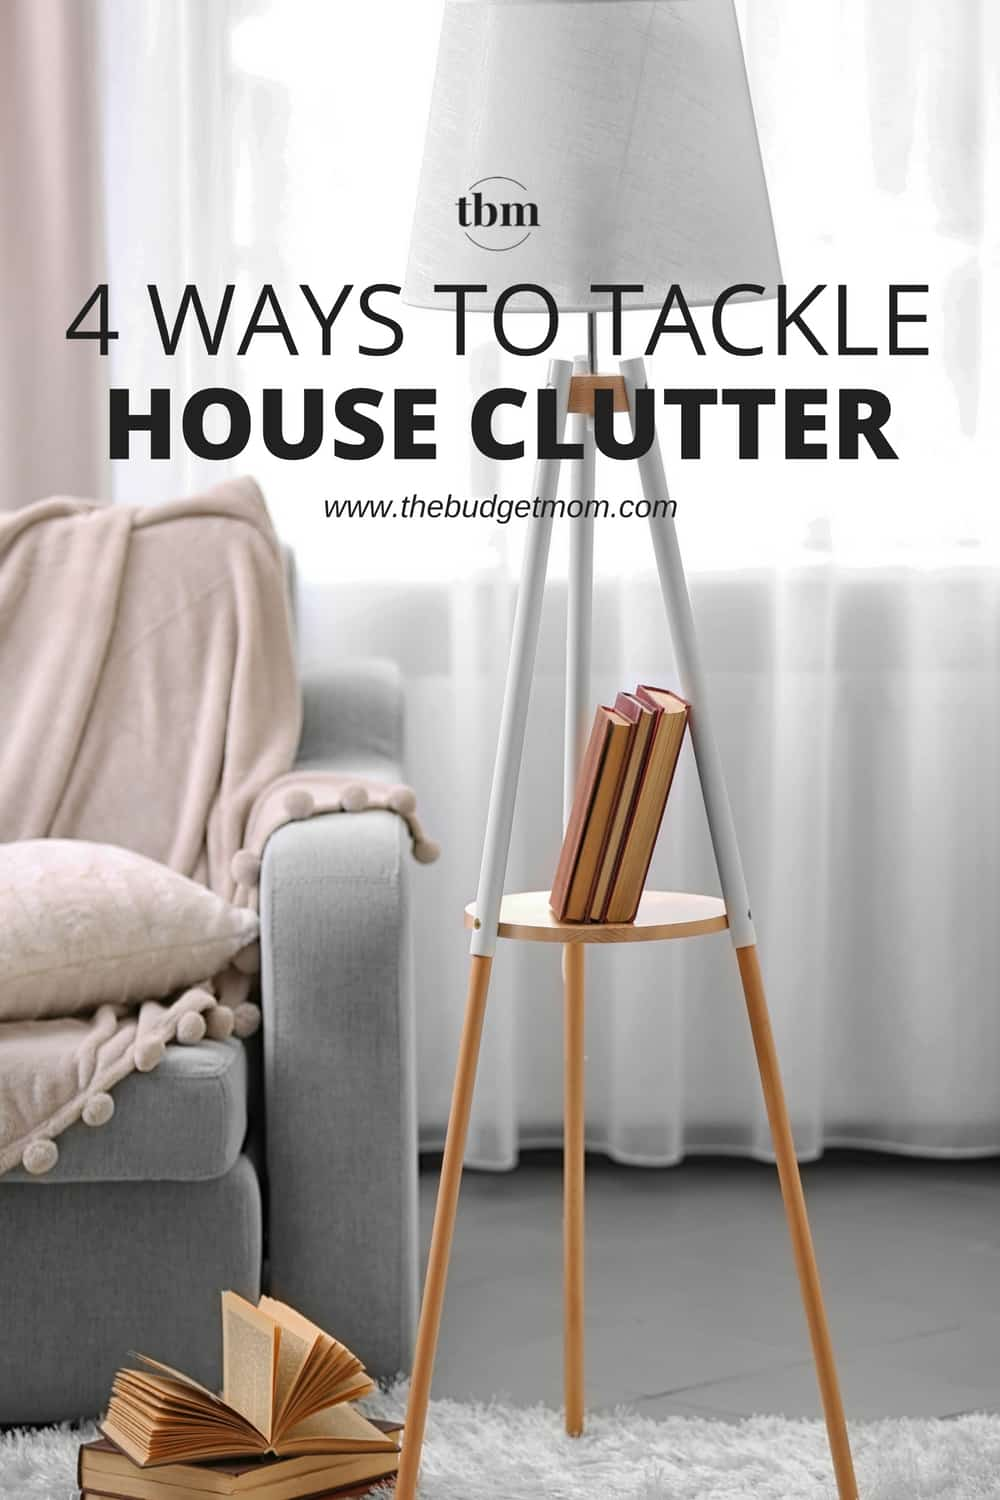 When you have a cluttered home, it can be hard to de-stress and relax. Here are a few tips to finally clear the clutter from your home.